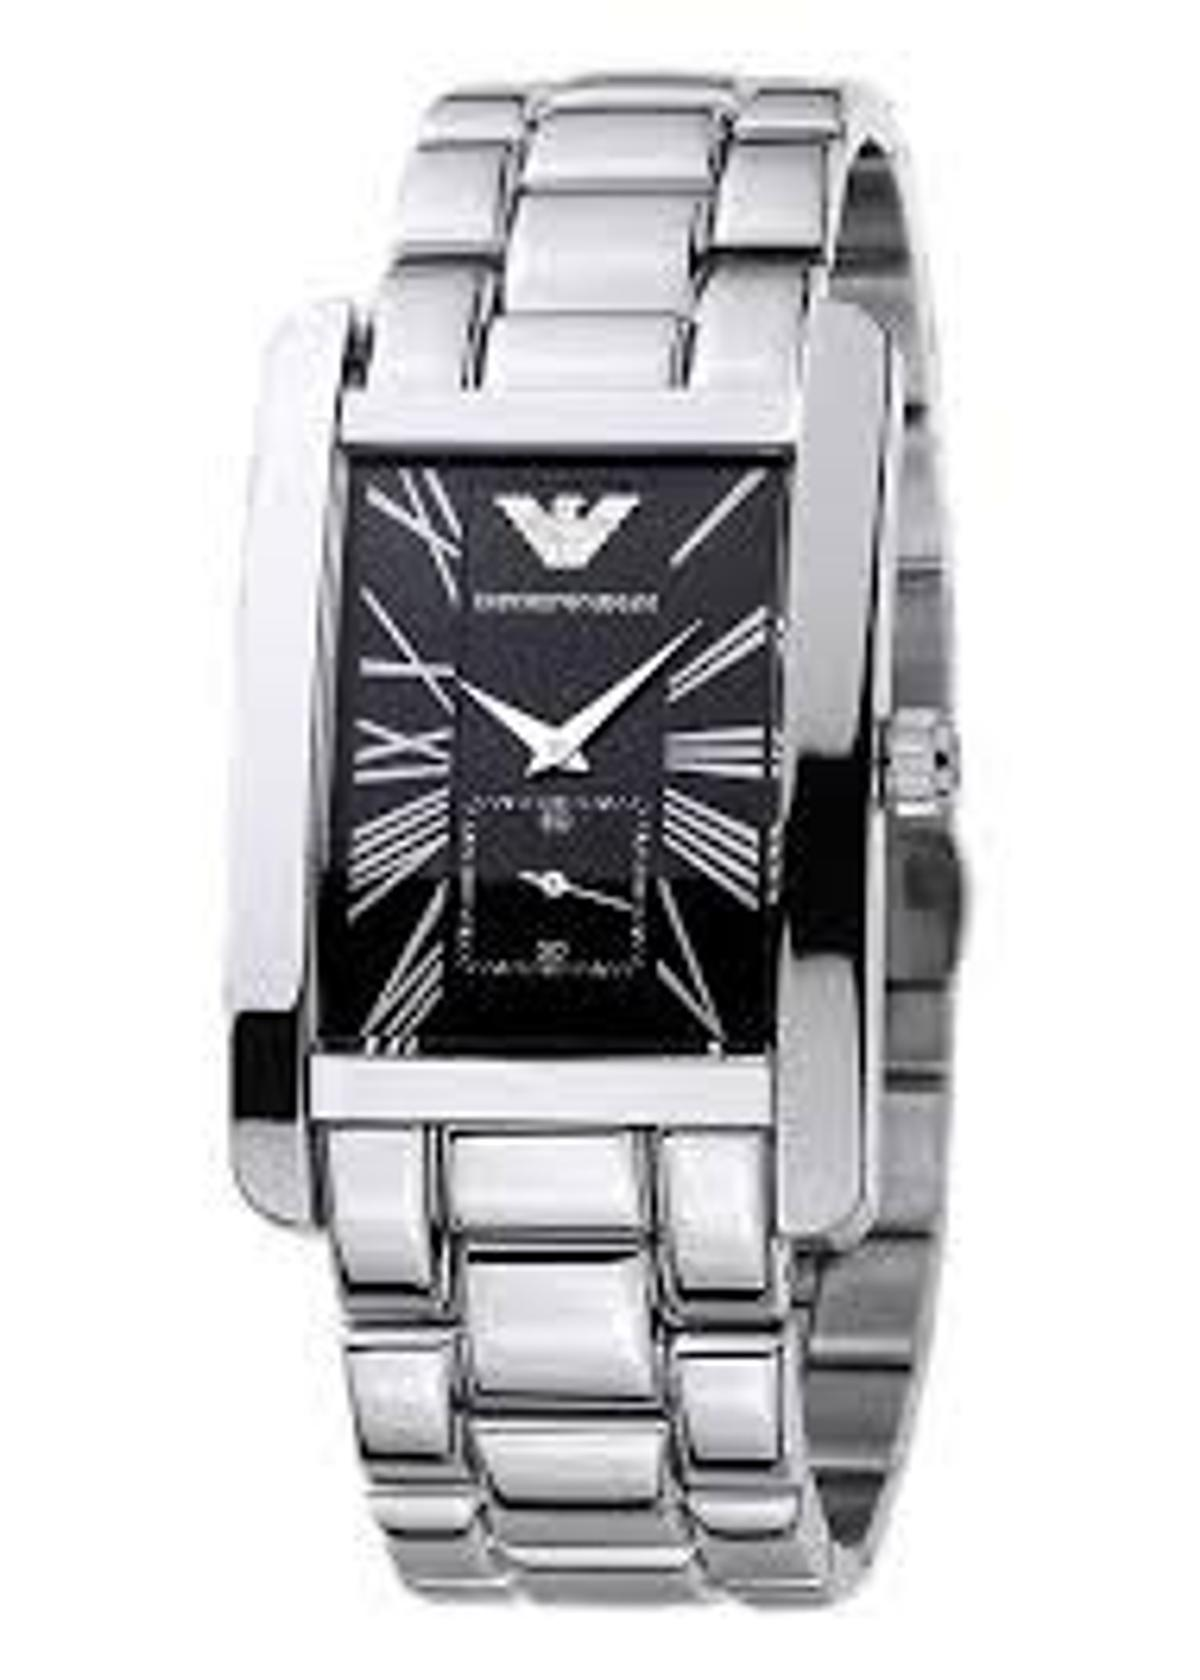 993d9c4c8b Armani AR0156 - Mens Classic Steel Watch